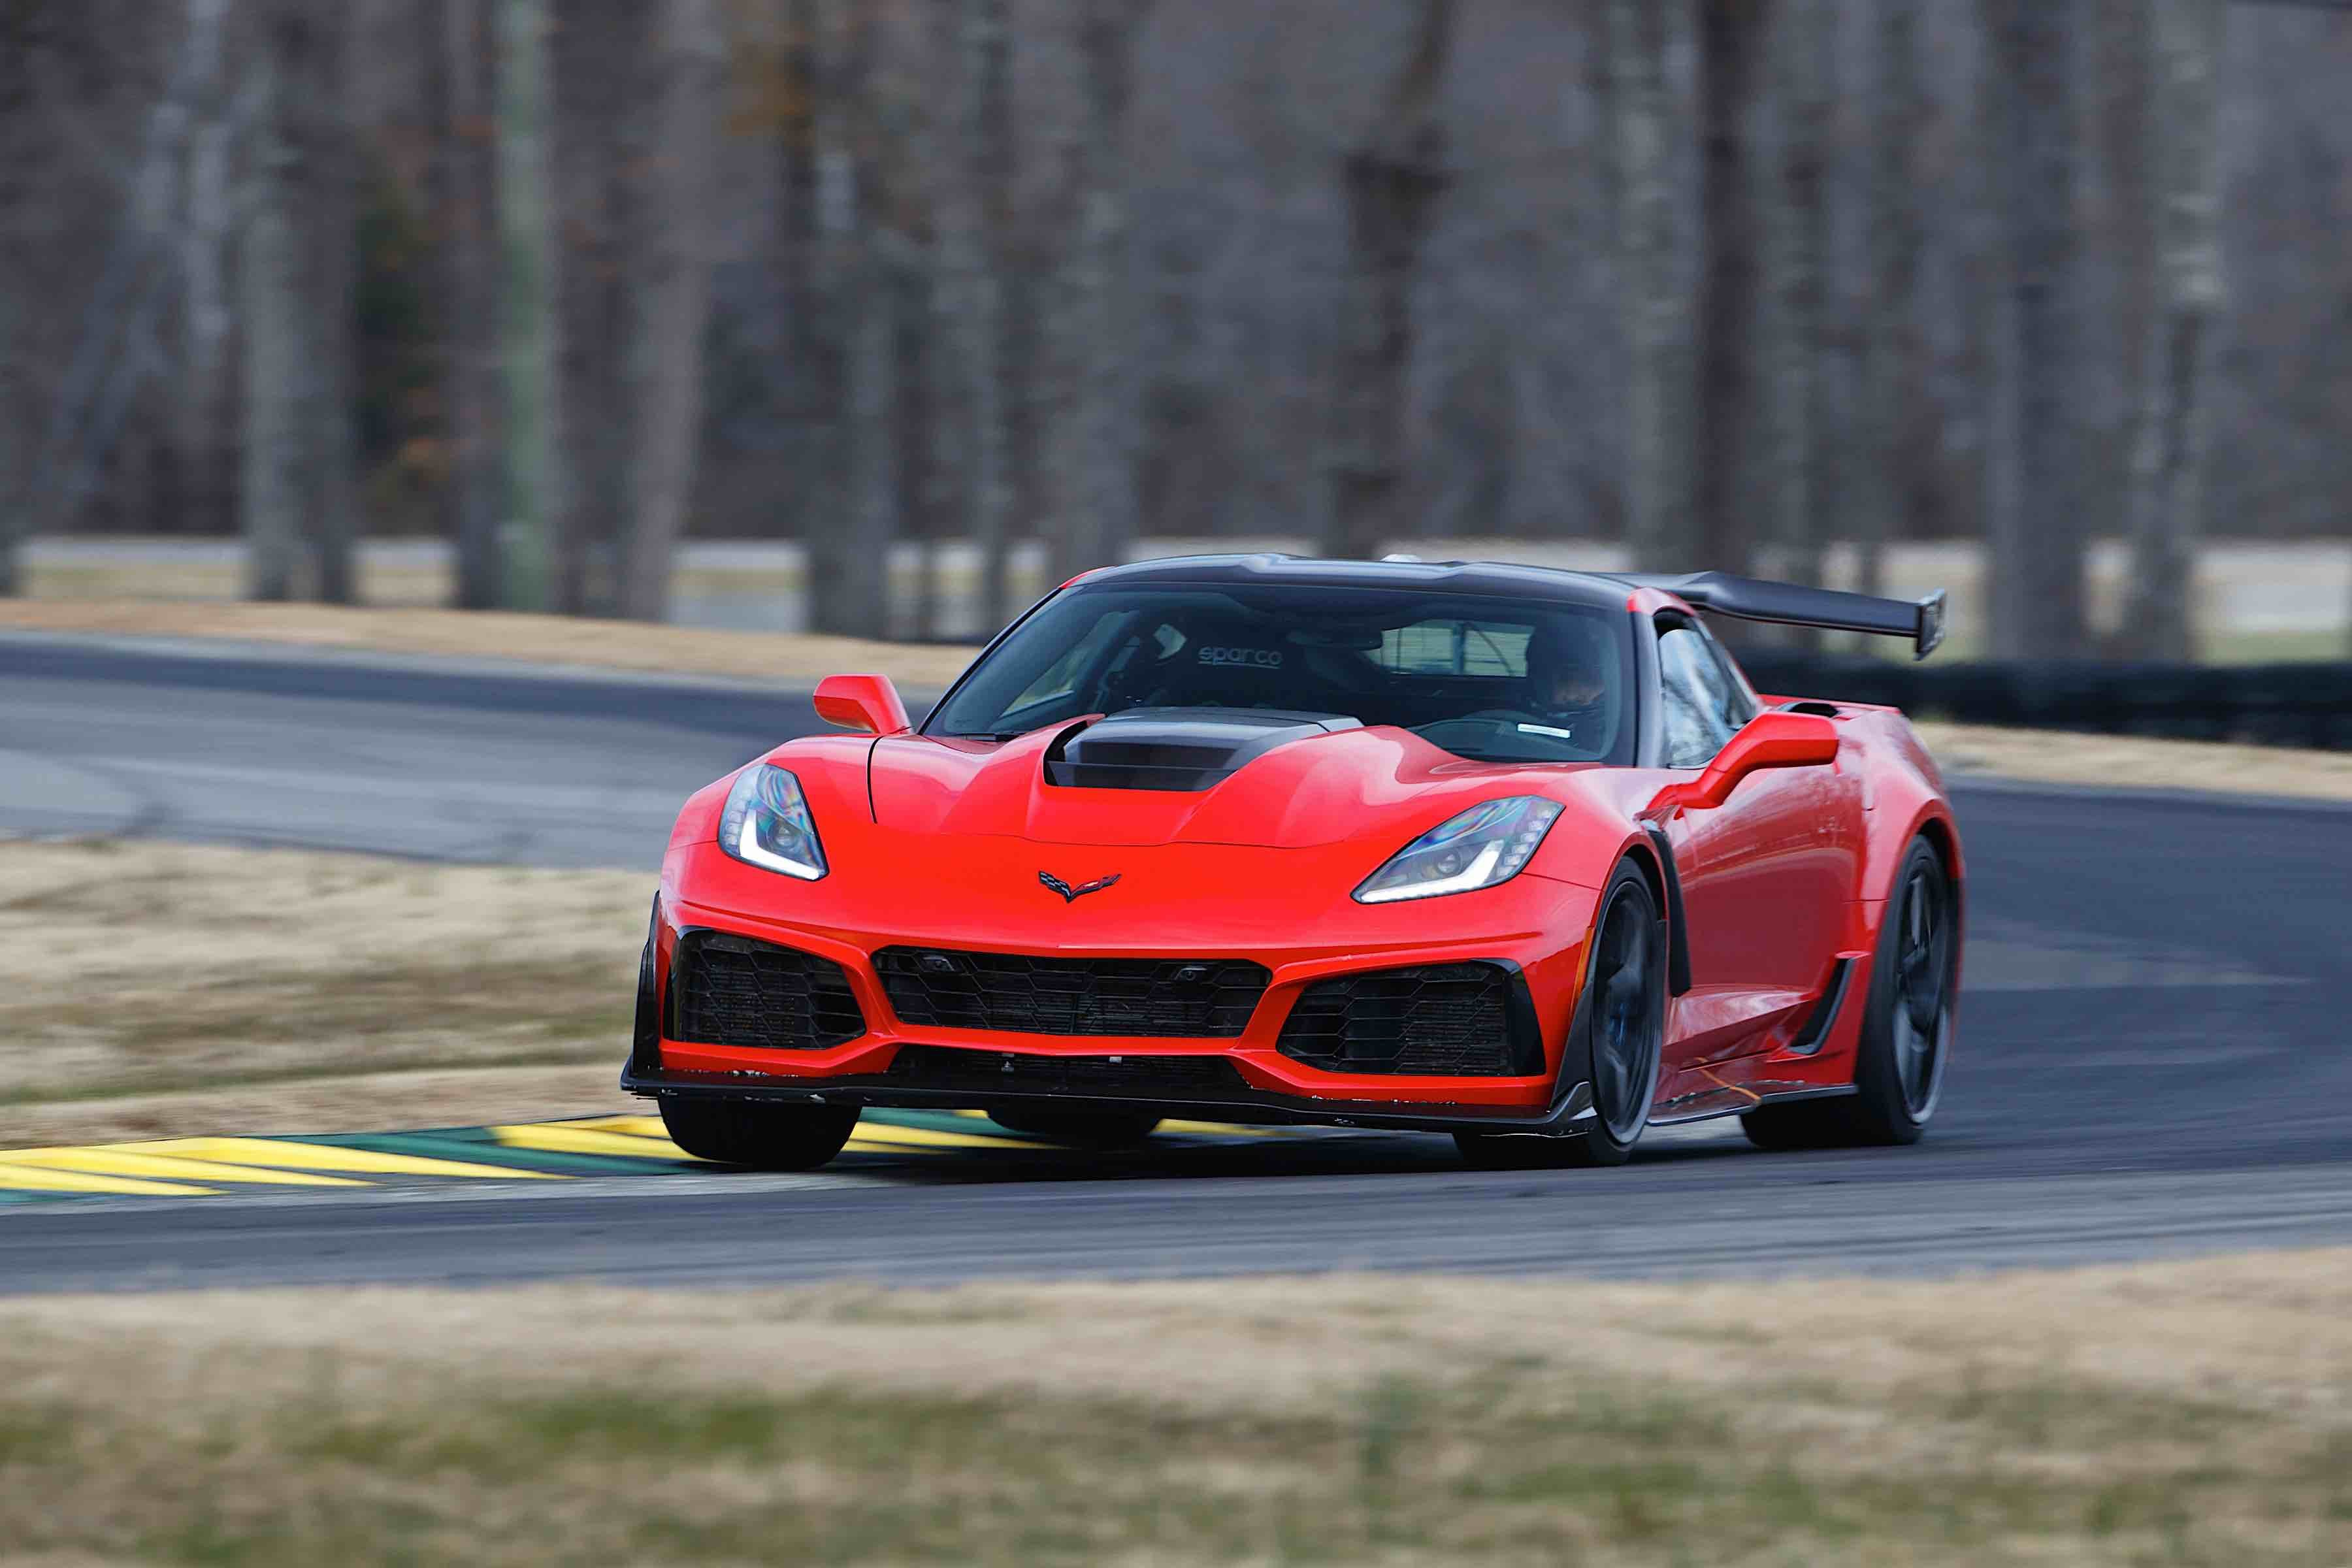 2019 Corvette ZR1 Becomes Fastest Production Car Ever At VIR